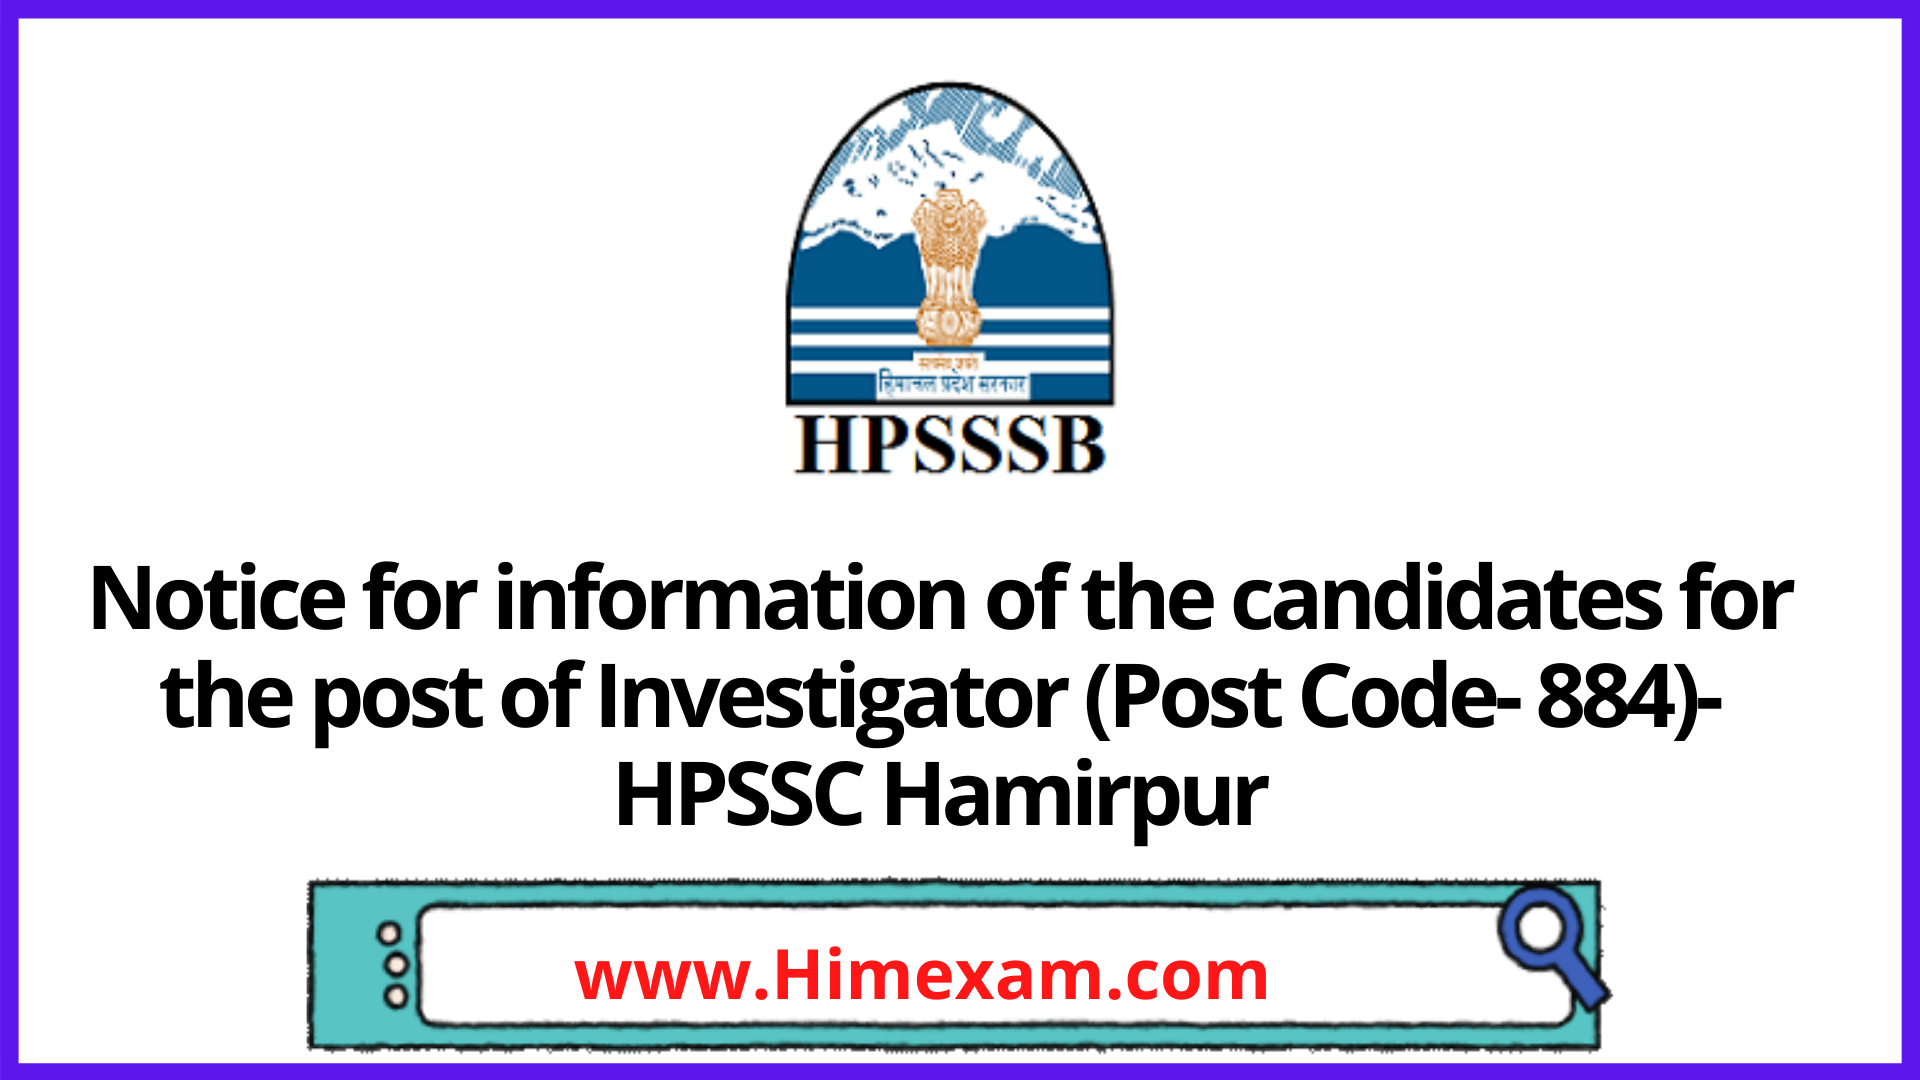 Notice for information of the candidates for the post of Investigator (Post Code- 884)-HPSSC Hamirpur